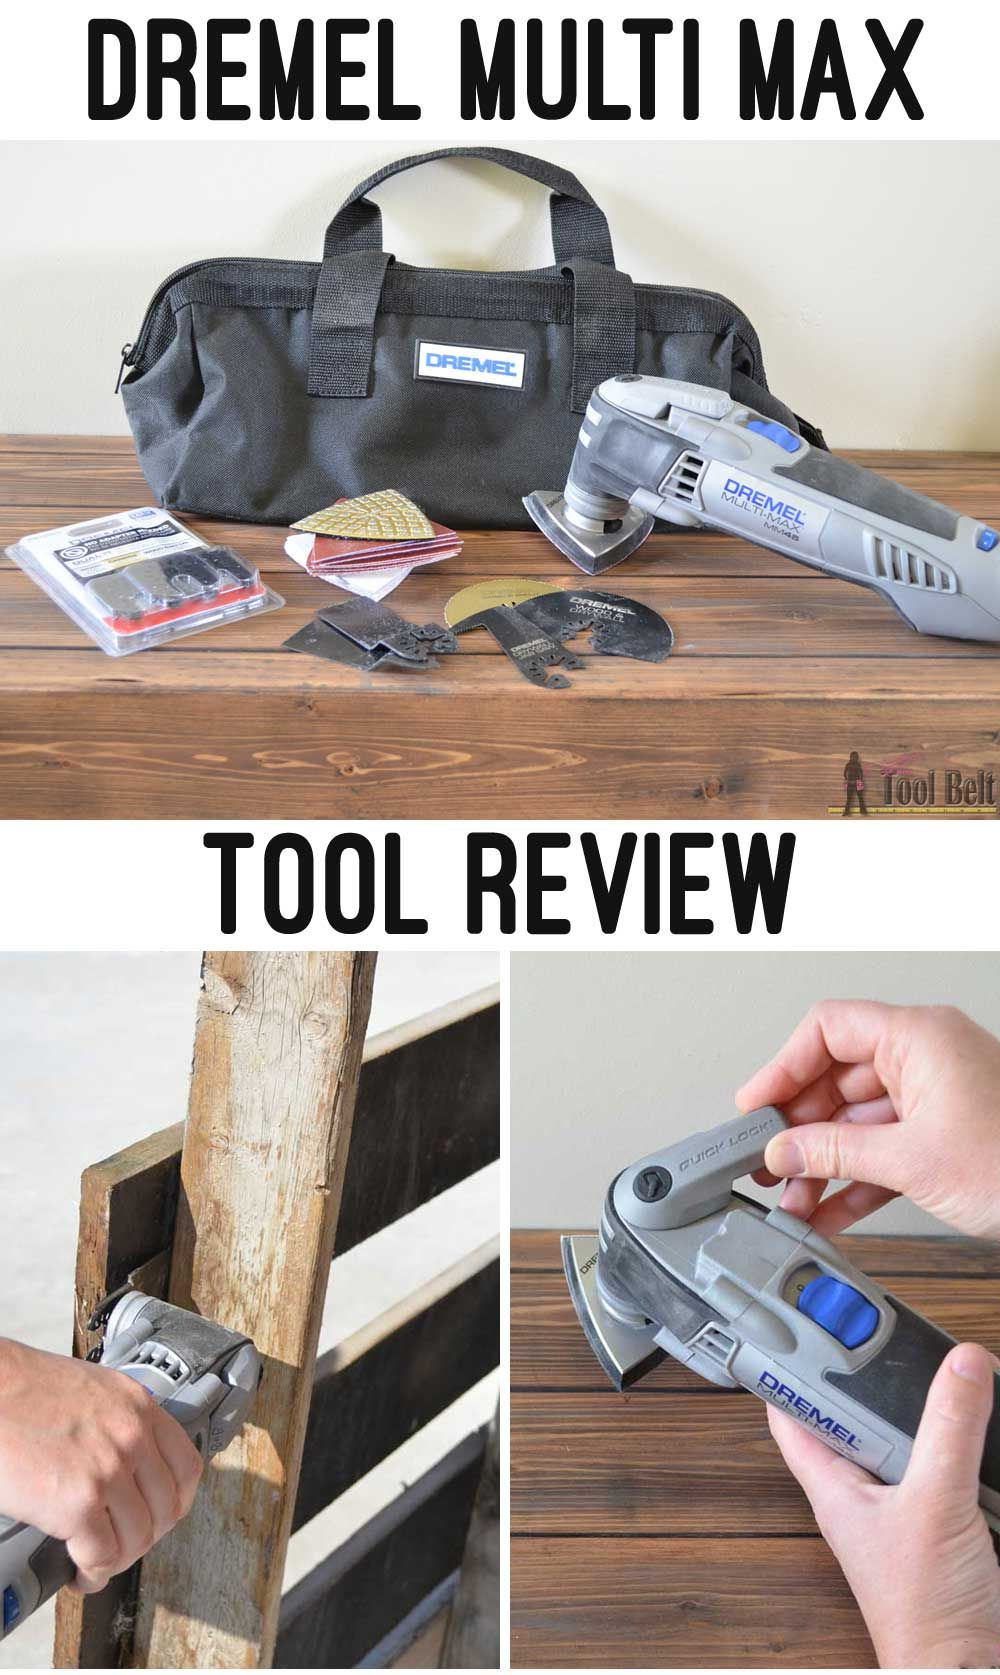 Dremel mm45 oscillating tool review and universal cut blades dremel mm45 oscillating tool review and universal cut blades greentooth Image collections